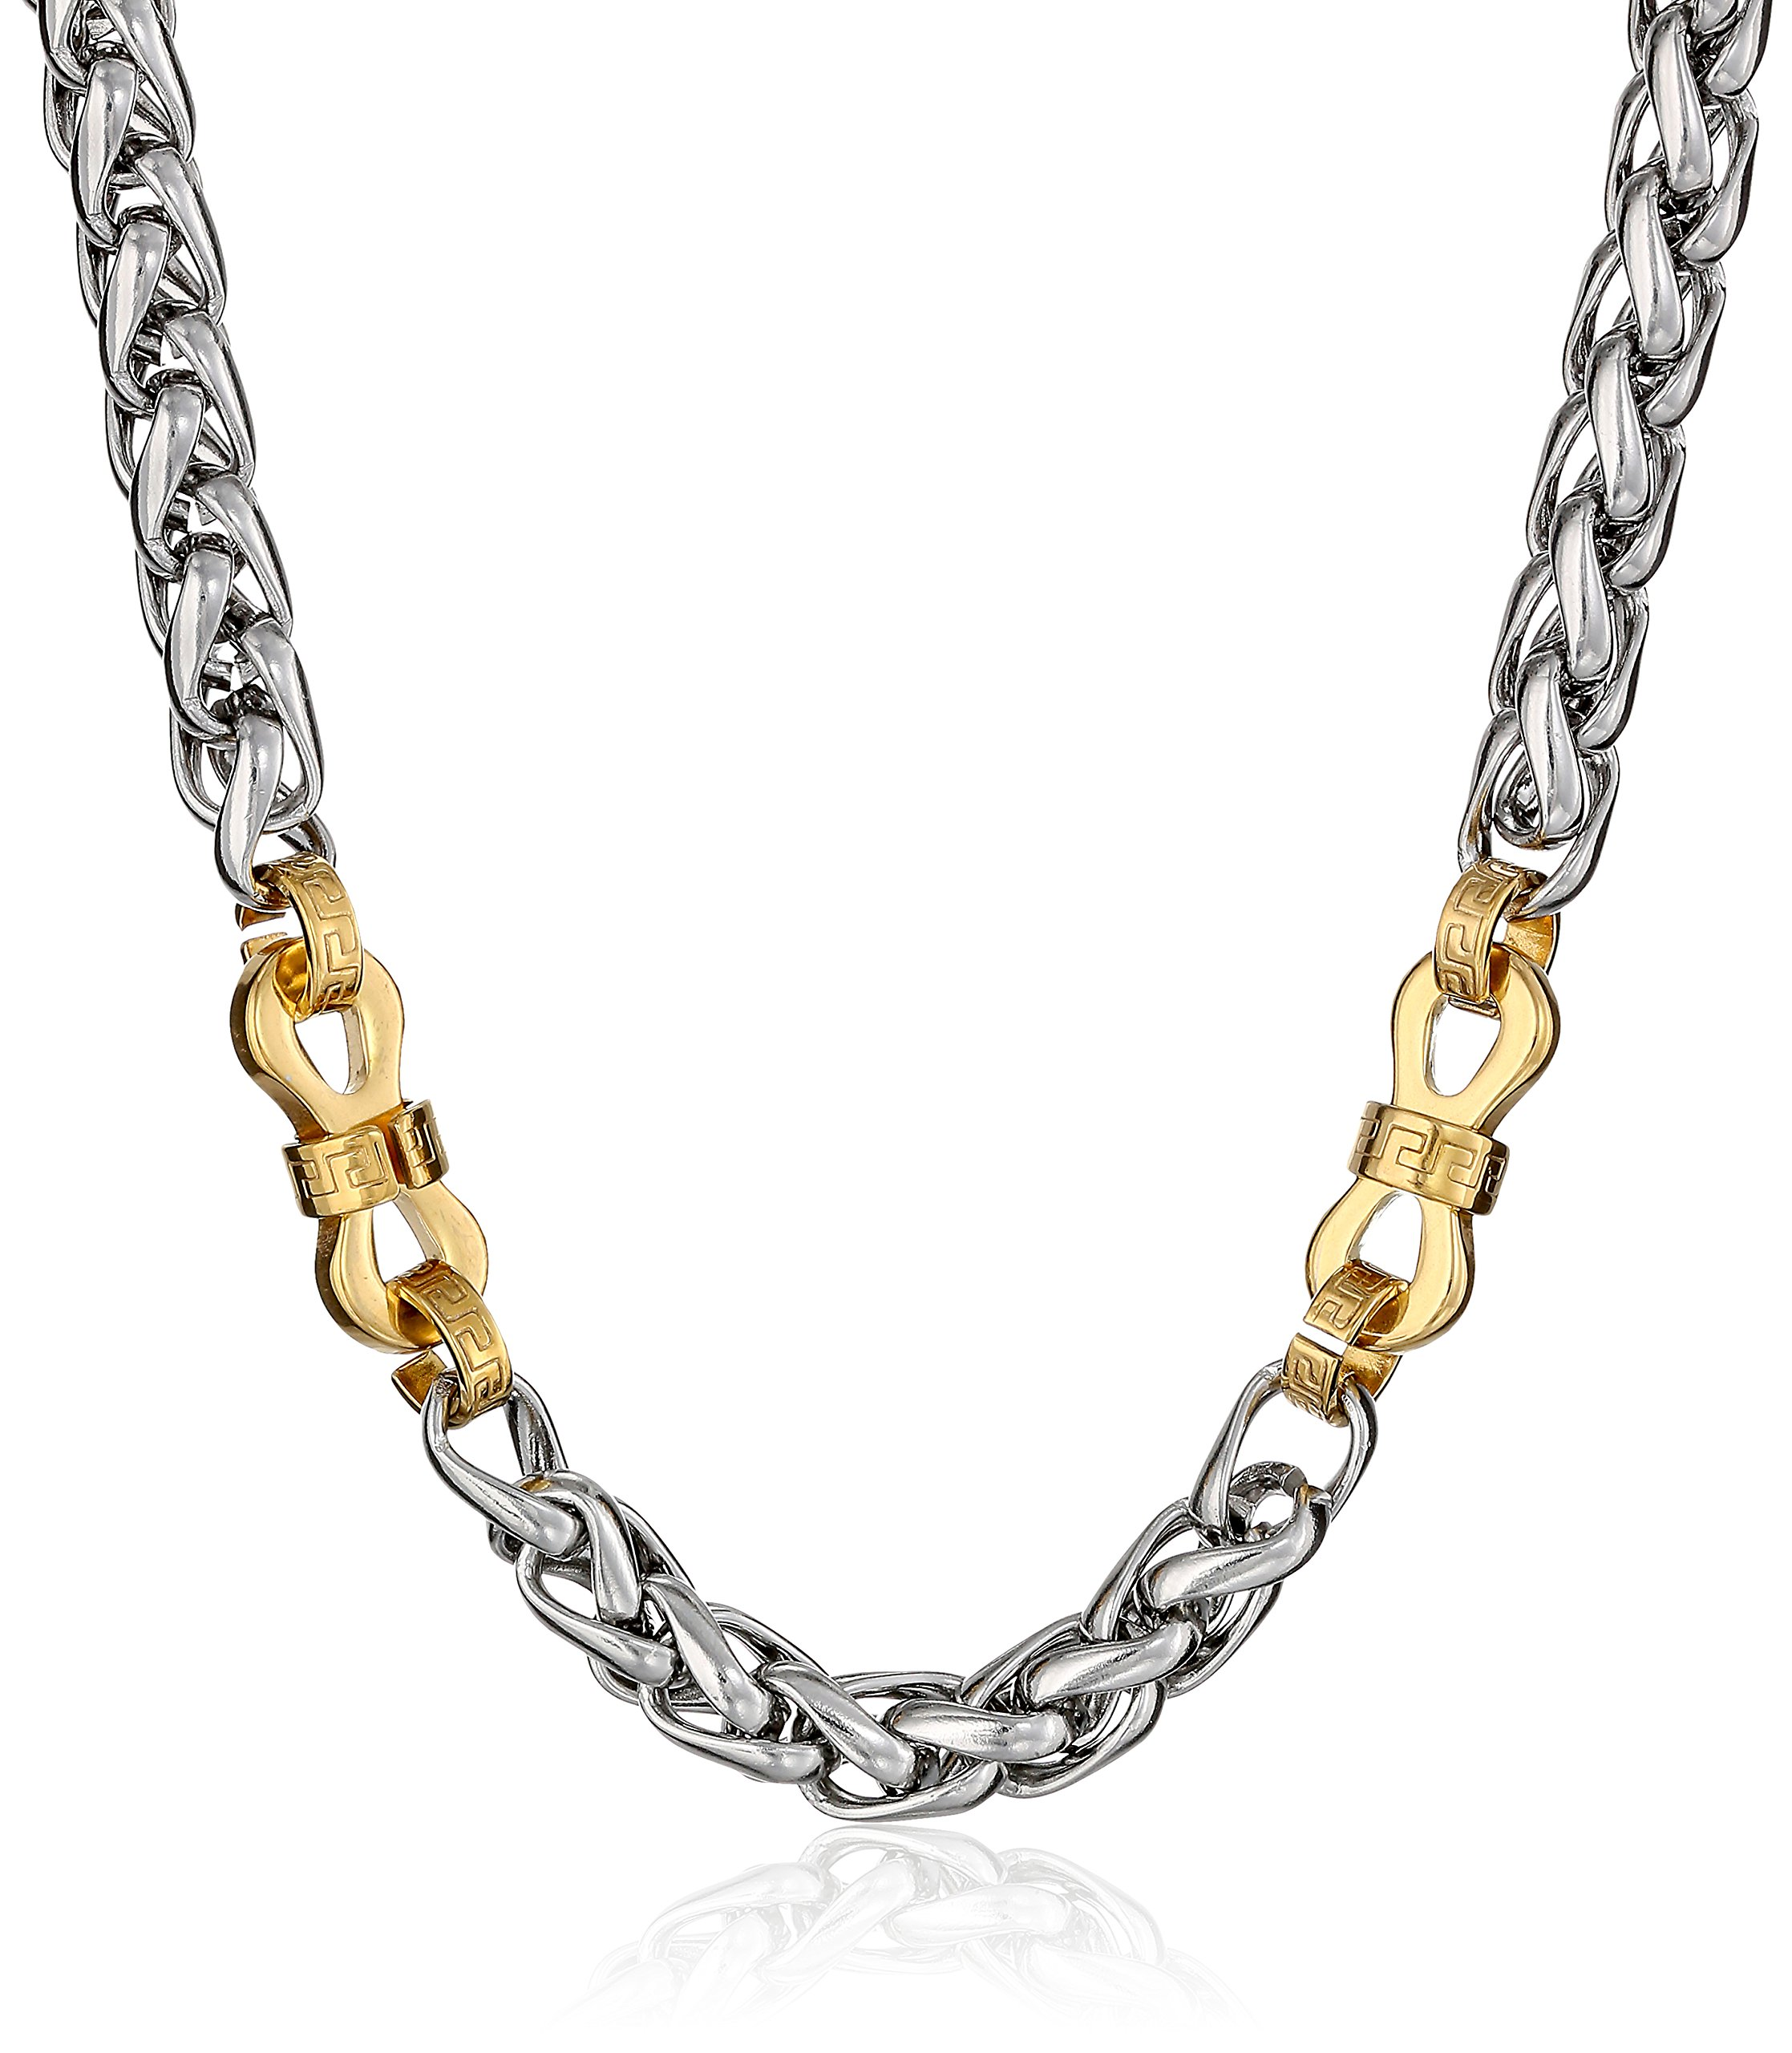 Cold Steel Men's Stainless Steel Yellow Immersion Plated Chain Necklace, 22''